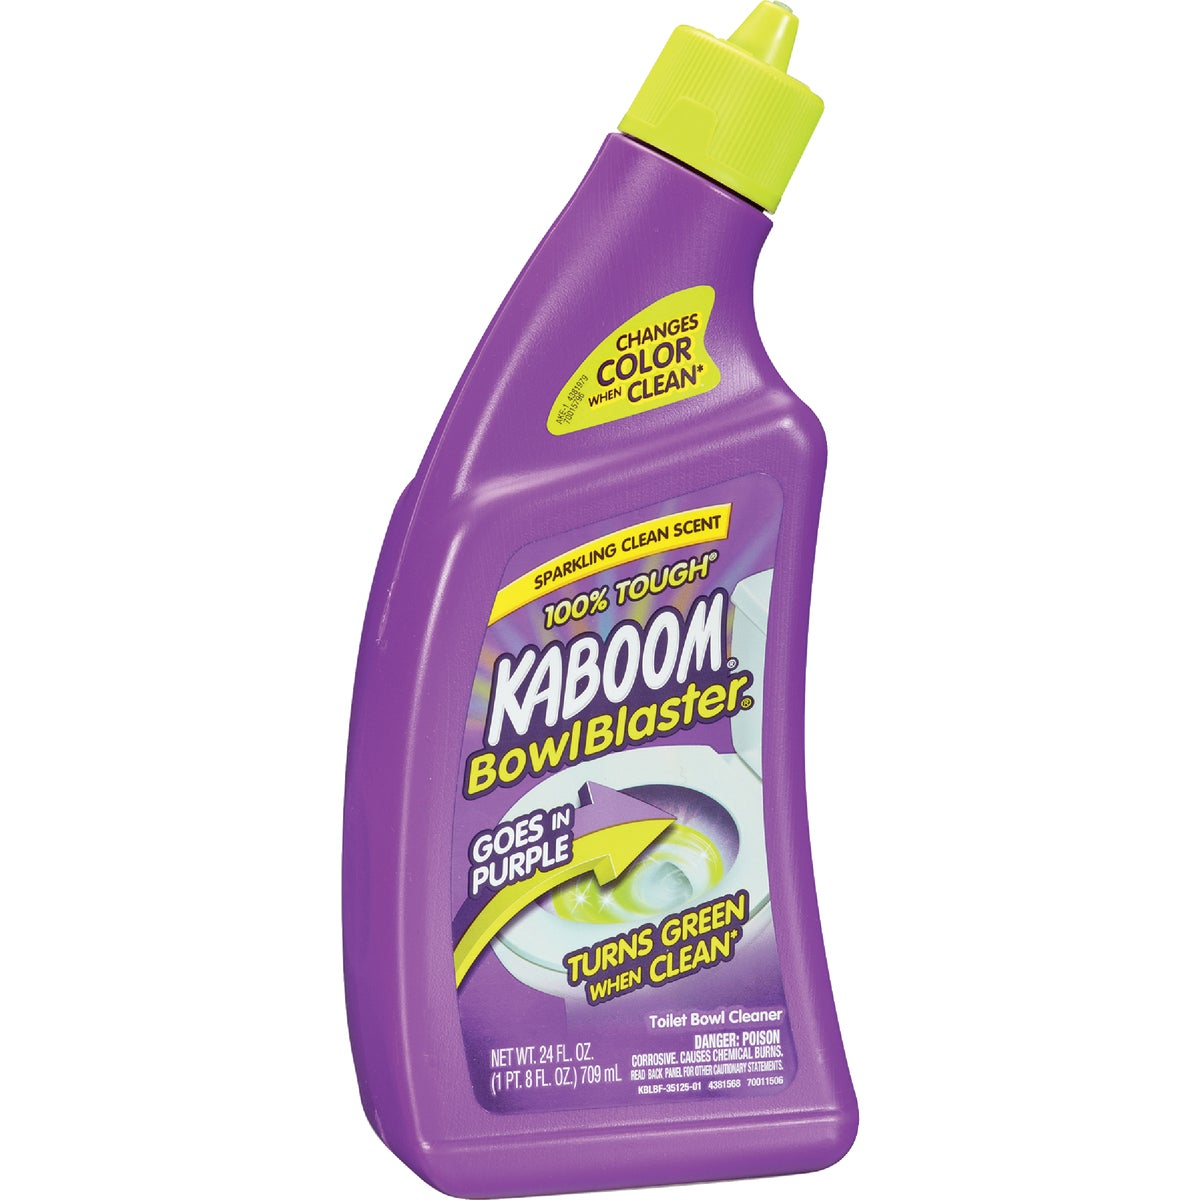 KABOOM BowlBlaster Toilet Bowl Cleaner, 35125